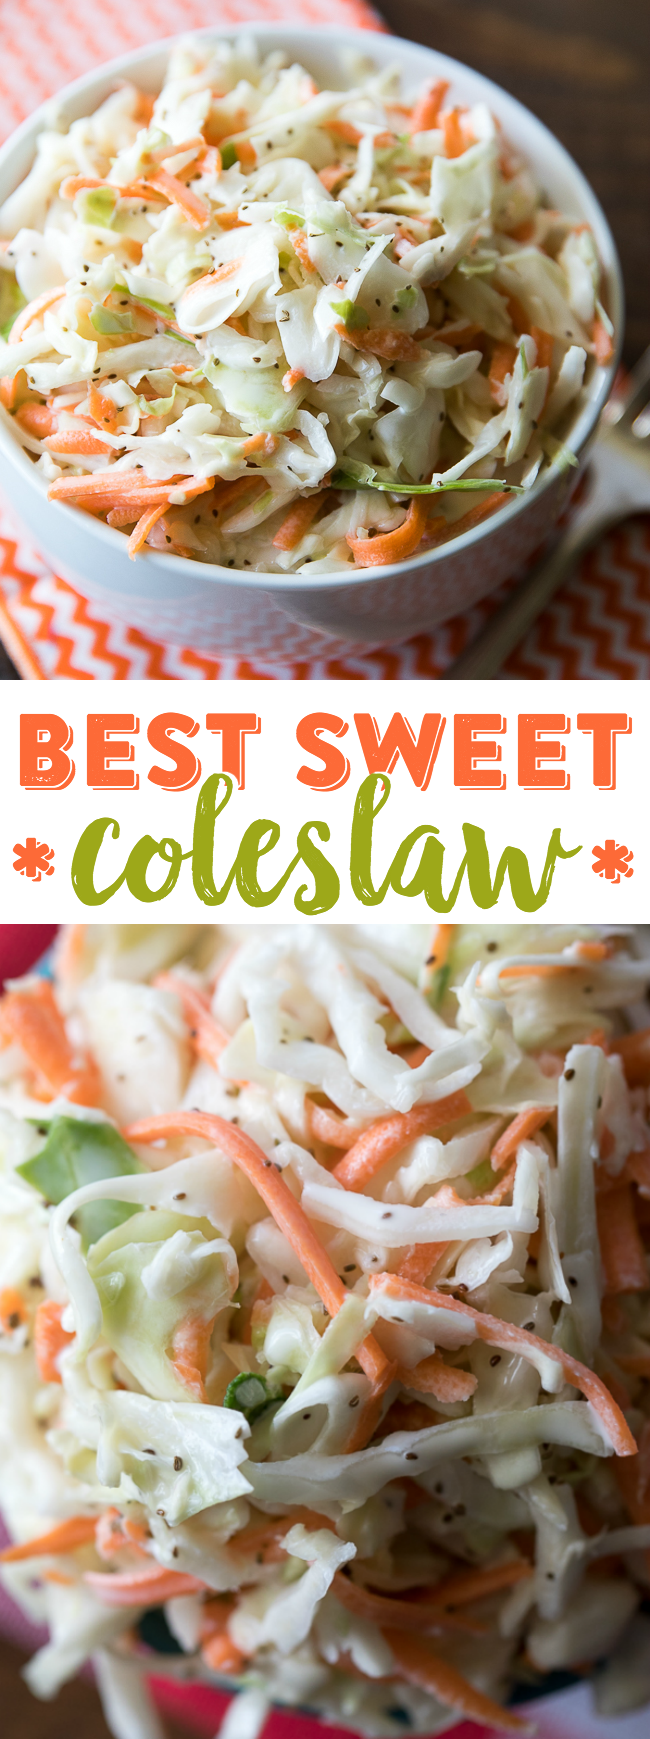 pics Classic Coleslaw with Buttermilk